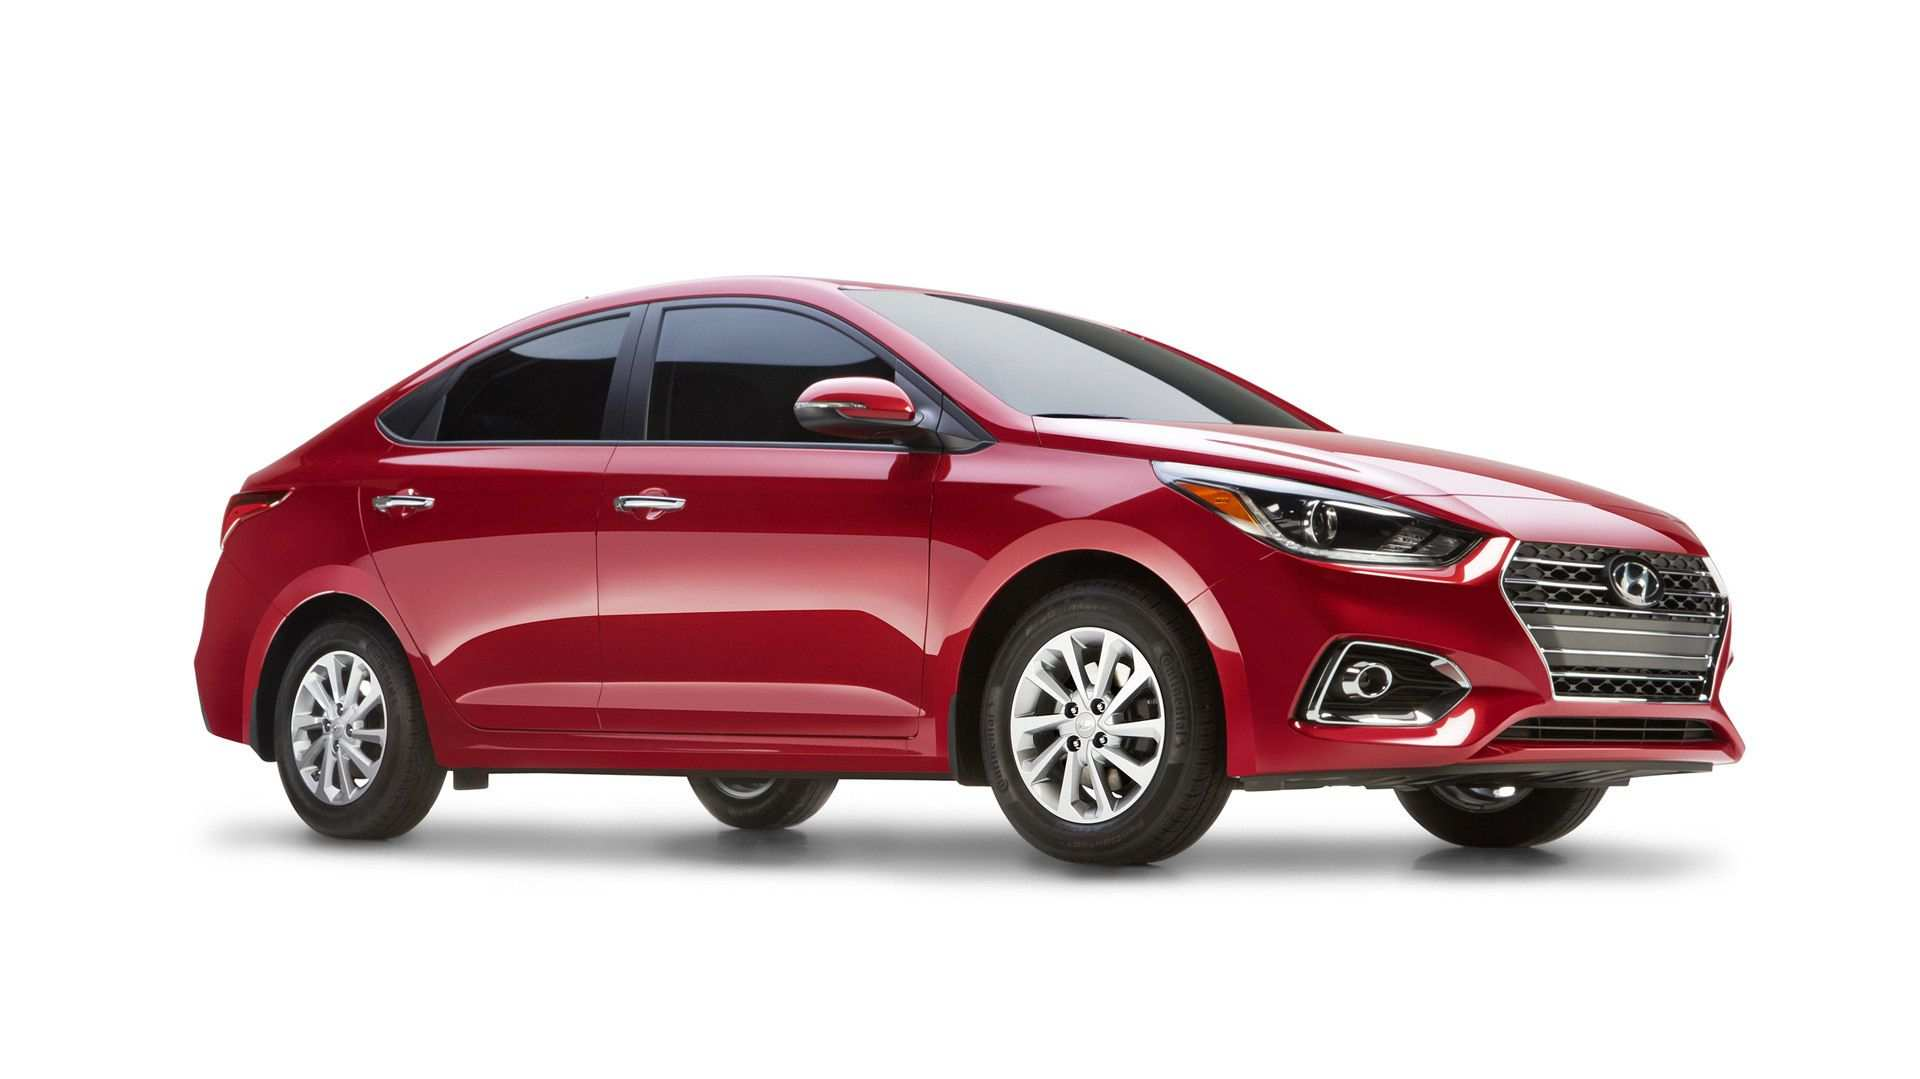 28 Best 2020 Hyundai Accent Hatchback Release Date And Concept